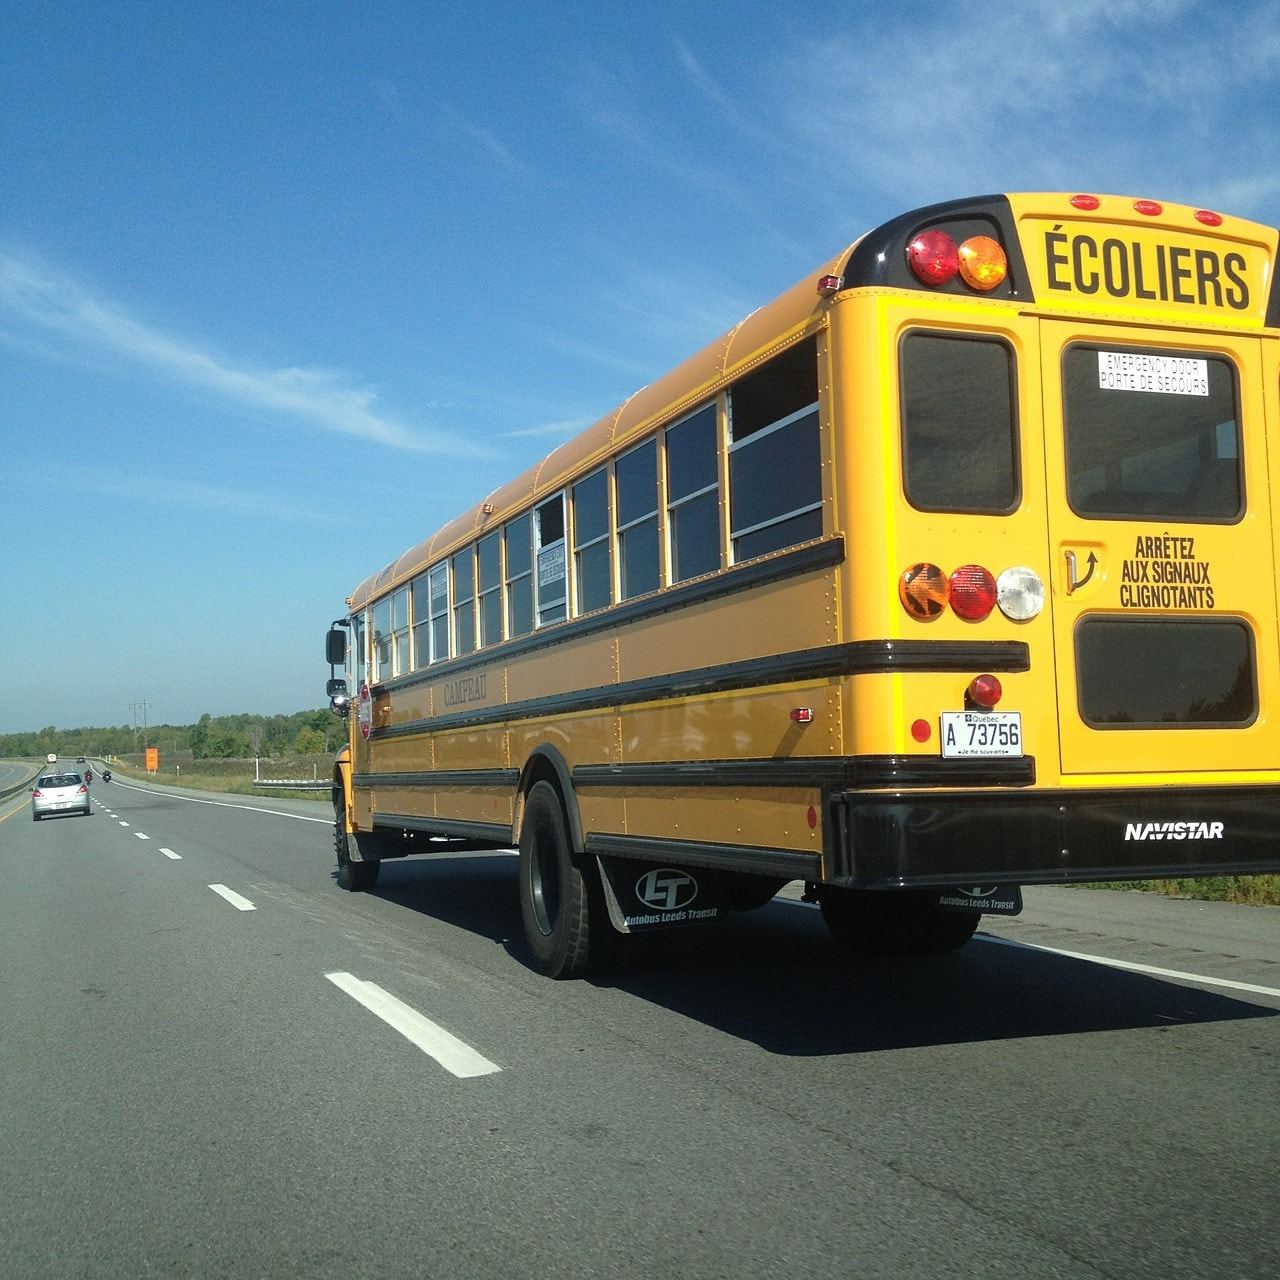 School bus on the road. Motorist, be careful.